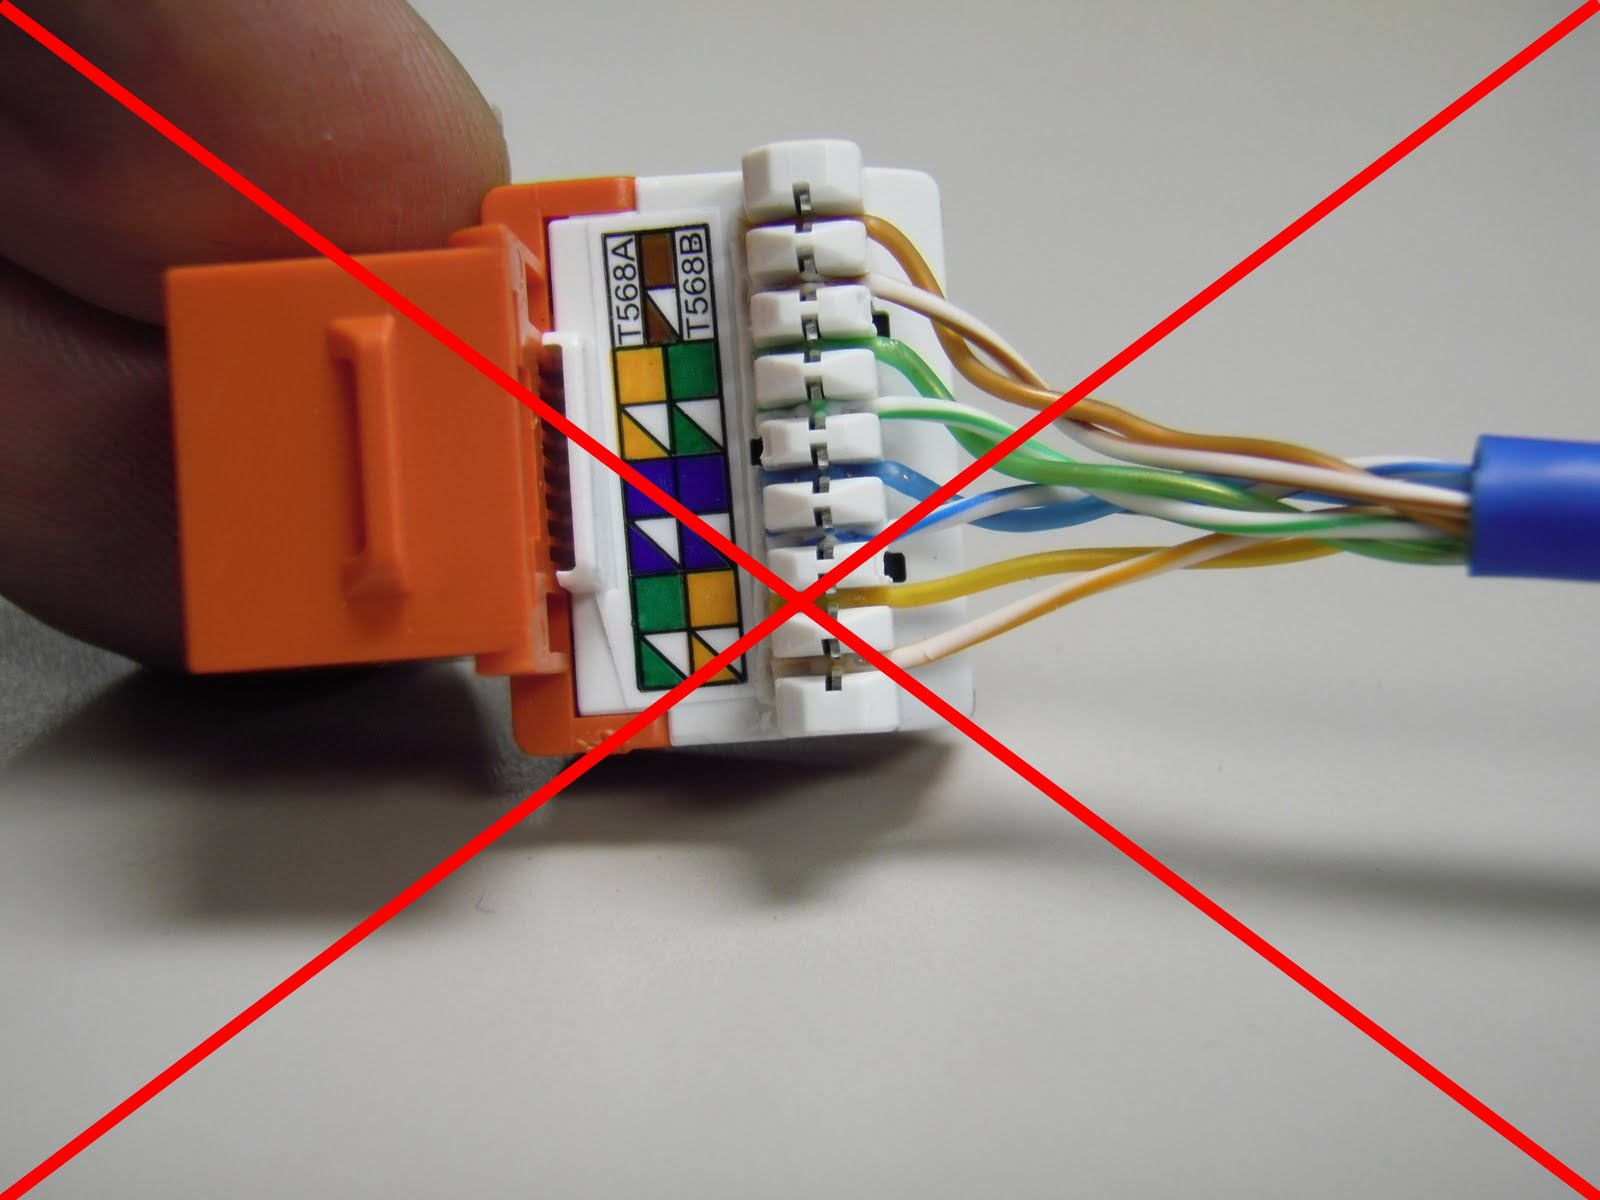 CAT5E+ER+JACK+PUNCHED+WRONG+RED+X the trench how to punch down cat5e cat6 keystone jacks cat5e jack wiring diagram at n-0.co